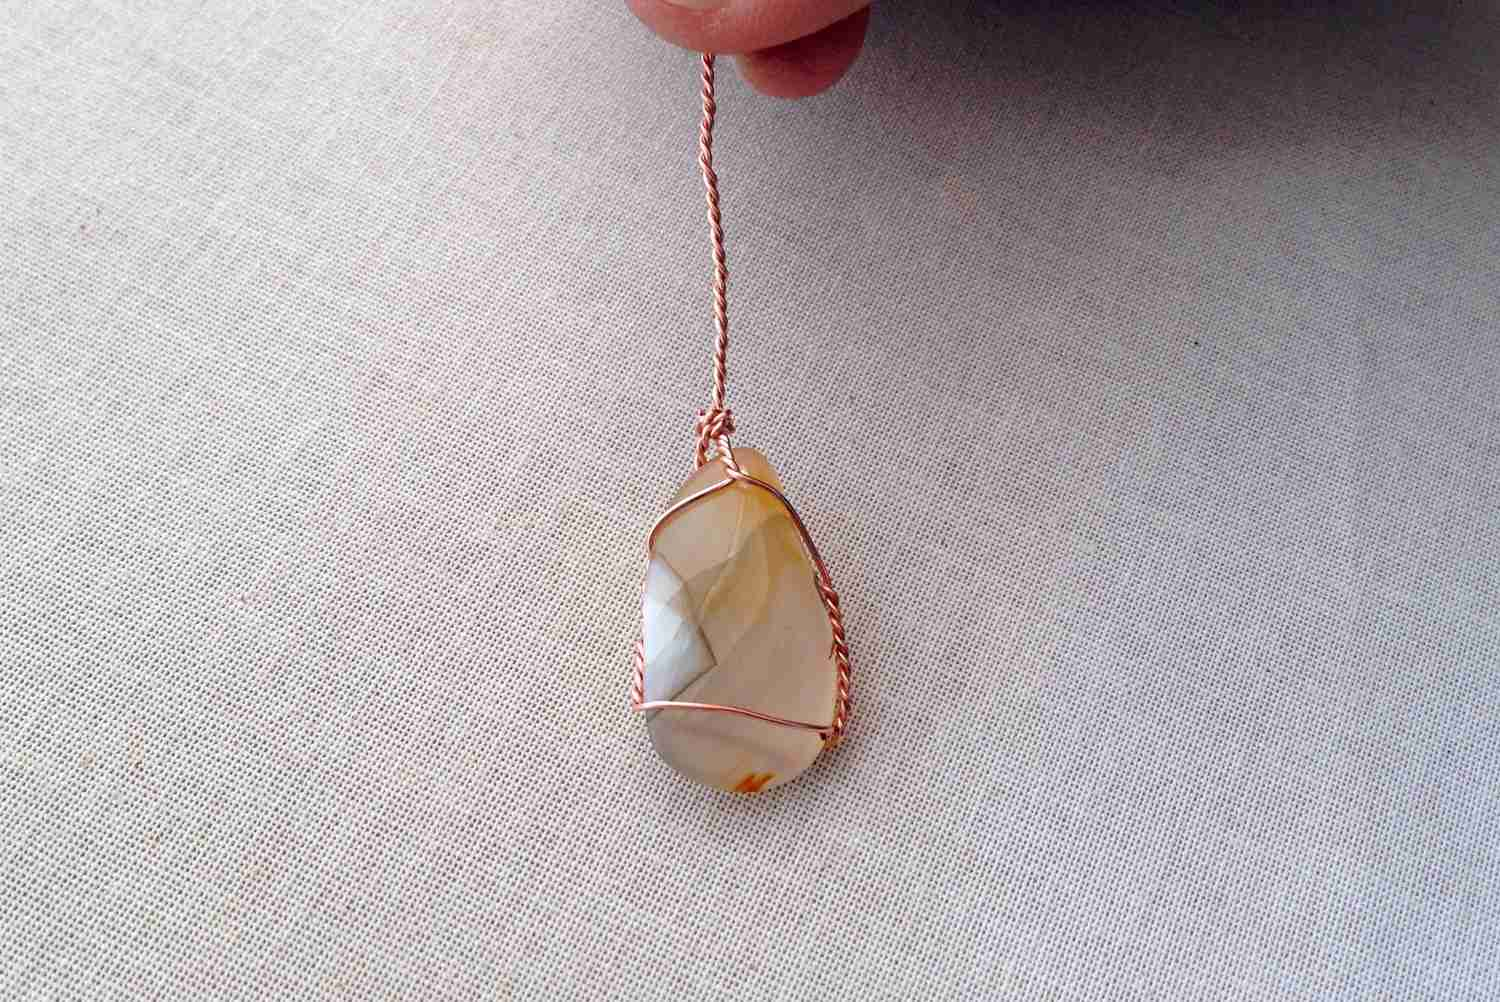 How To Make A Wire Wrapped Stone Pendant Necklace